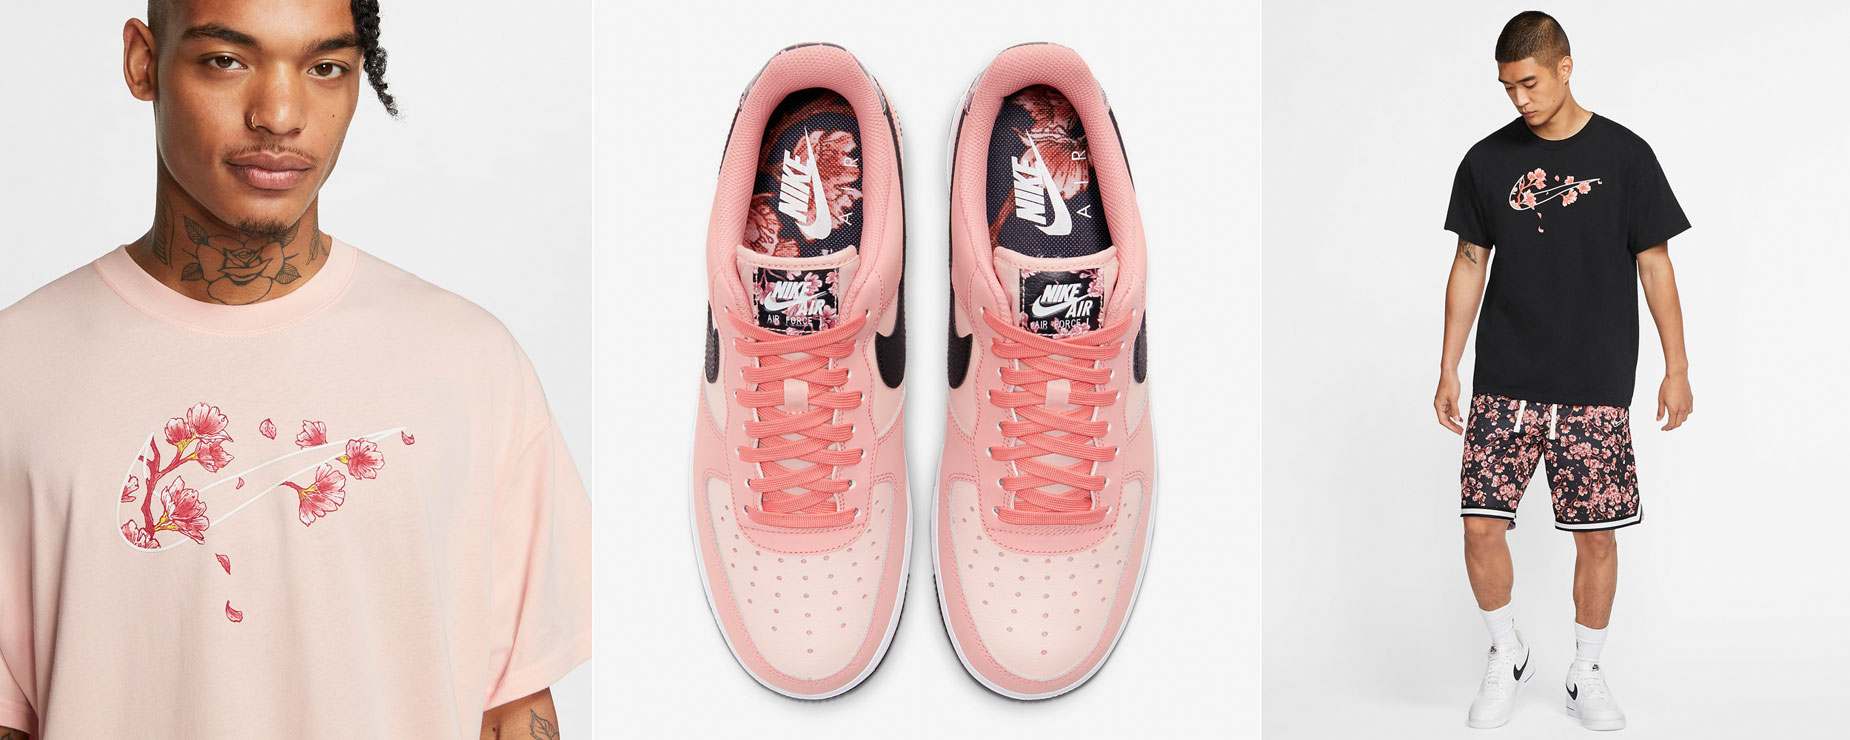 nike-cherry-blossoms-clothing-shoes